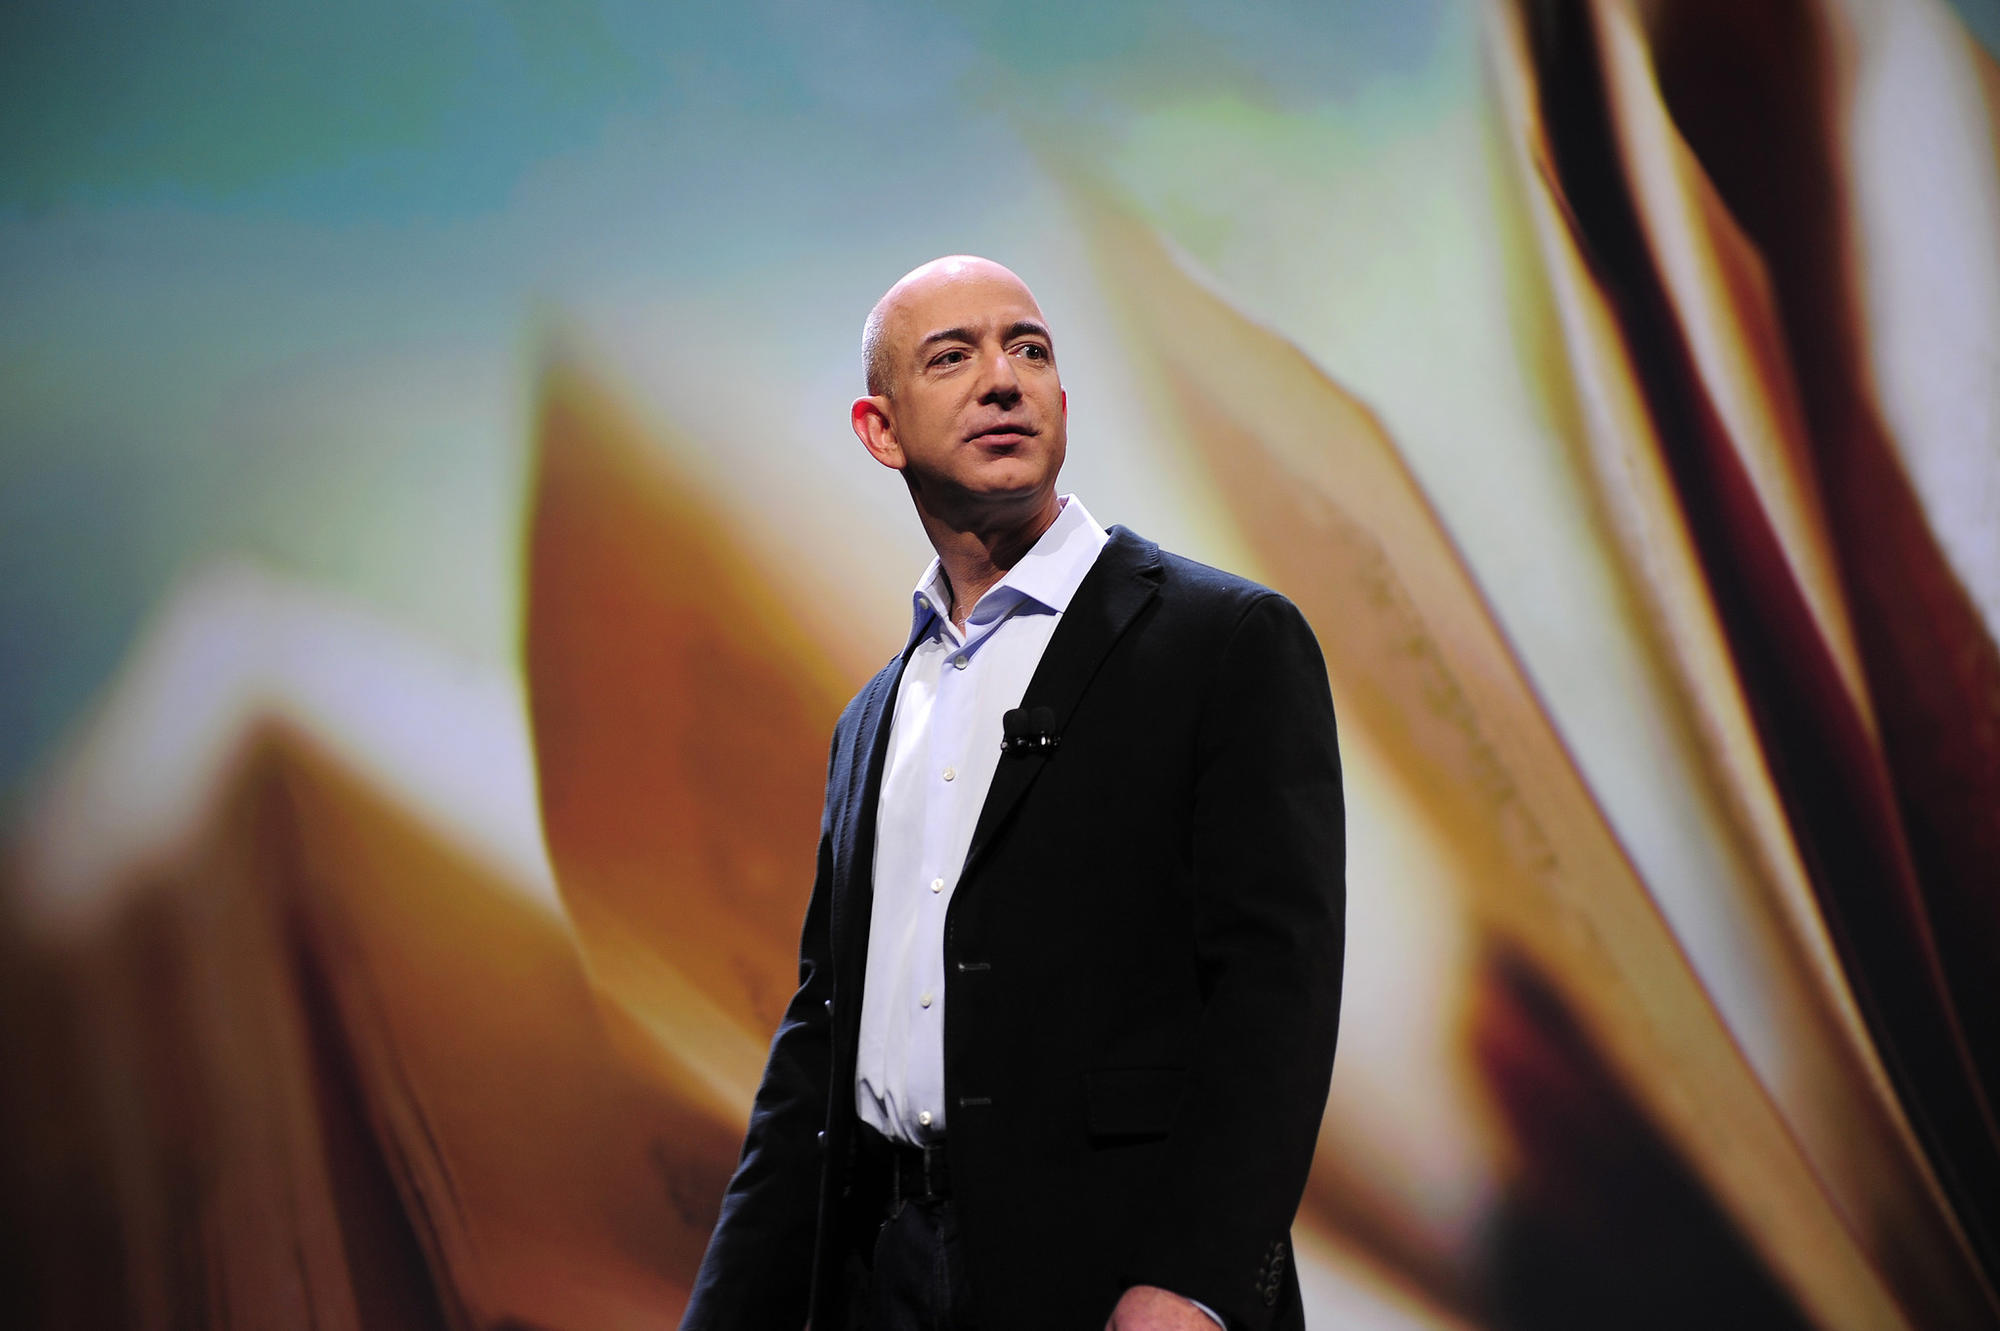 USA NEWS HEADLINES Jeff Bezos world's only $100 billionaire